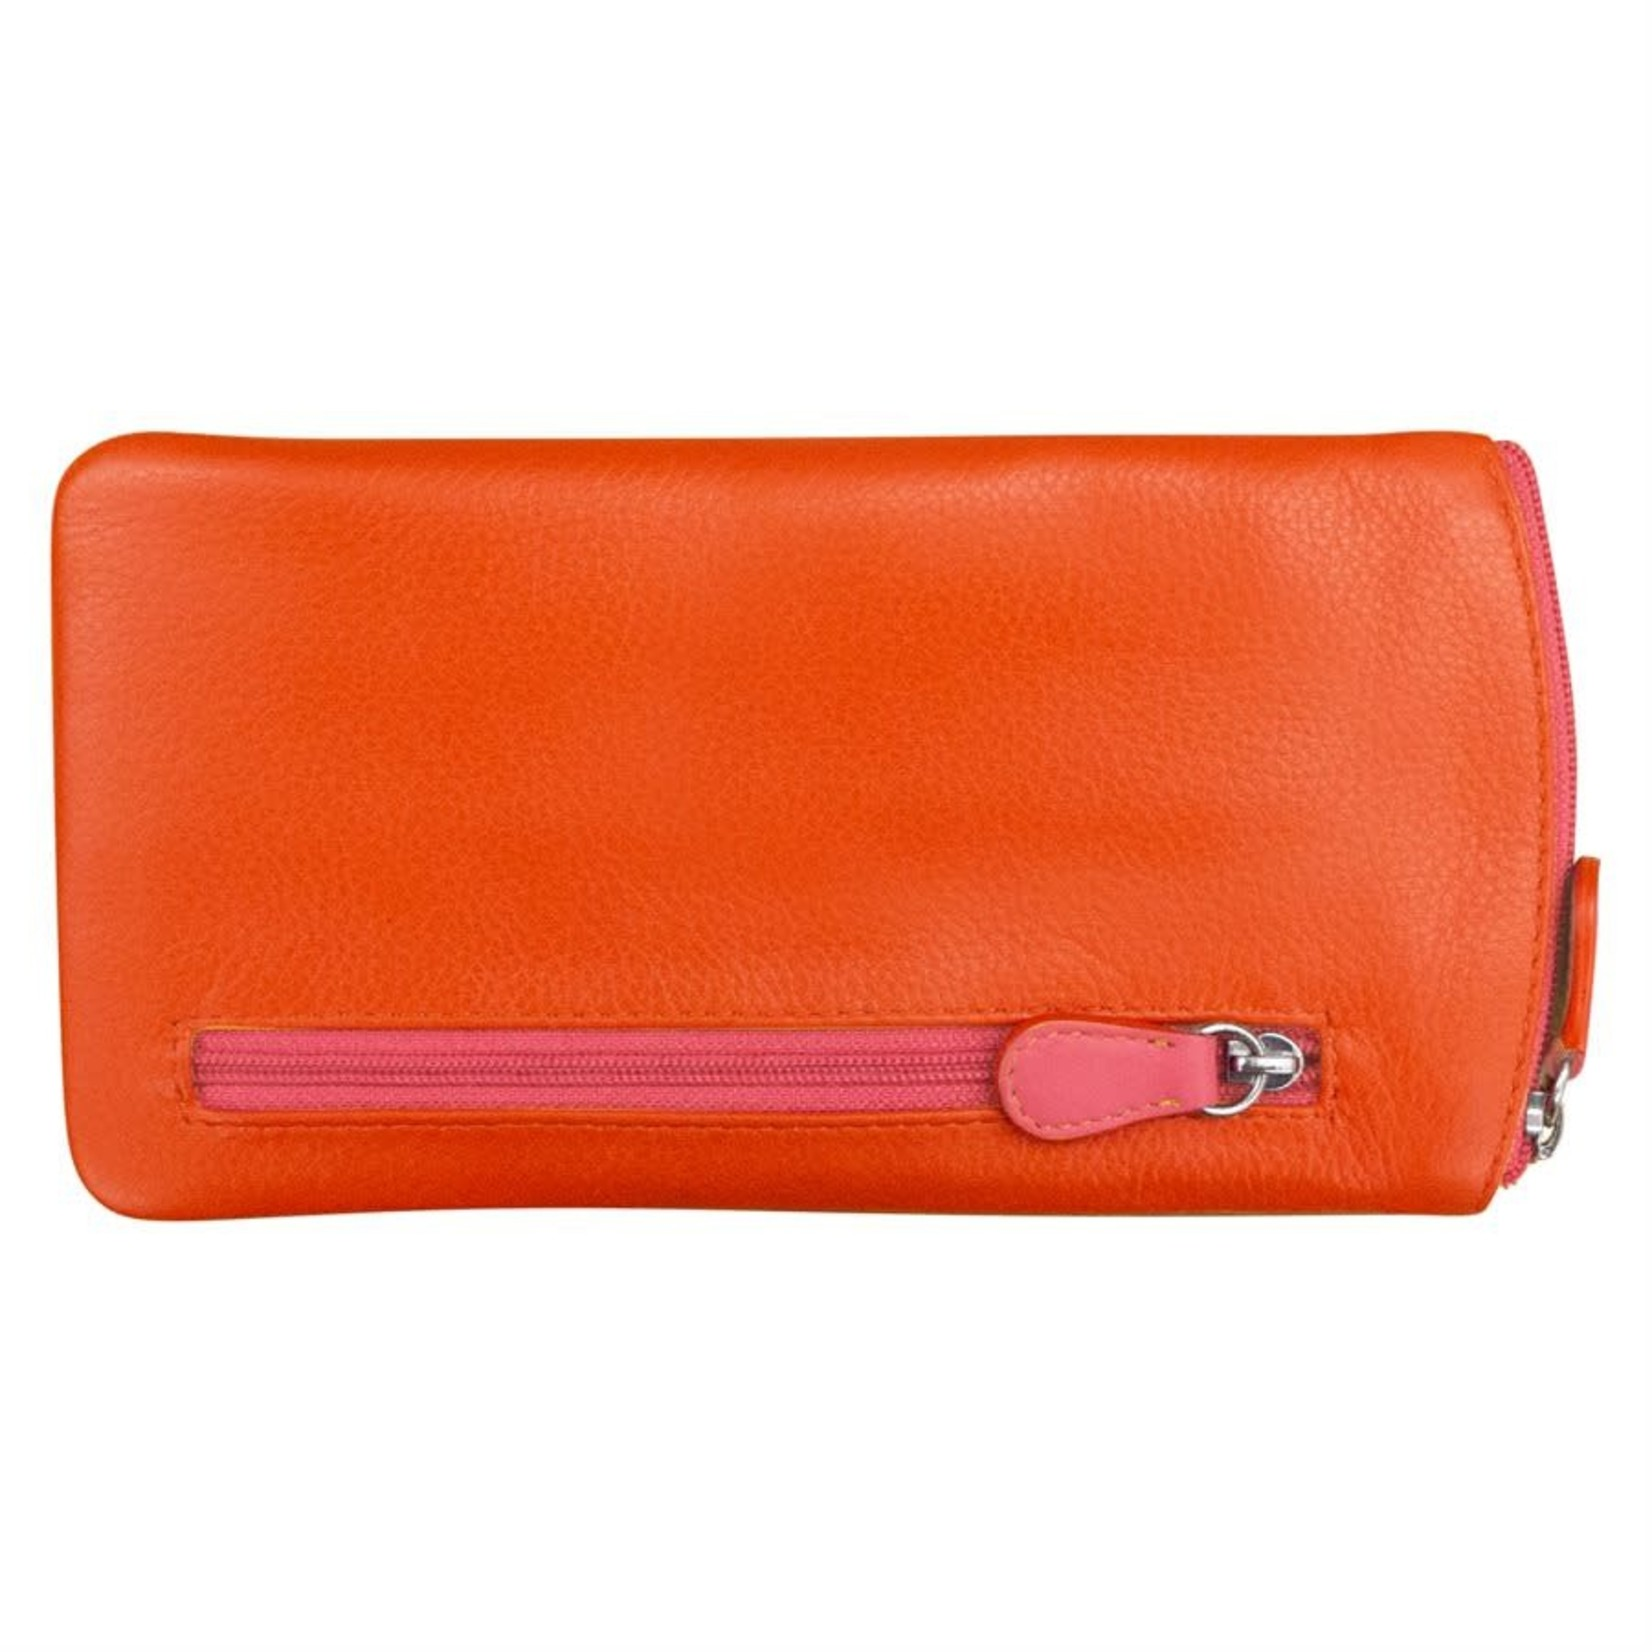 Leather Handbags and Accessories 6462 Orange/Hot Pink - Leather Eyeglass Case